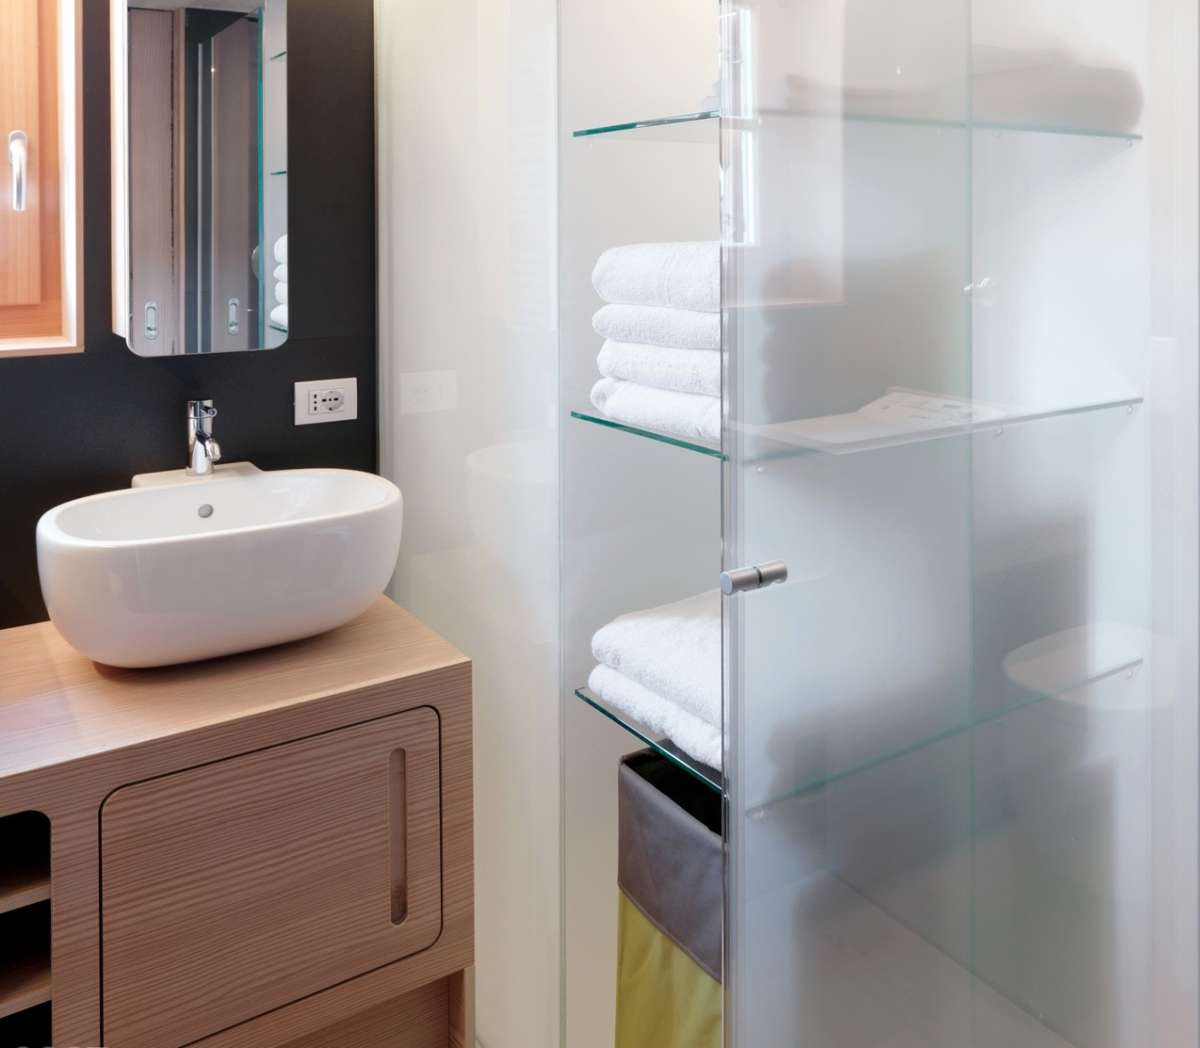 Beautiful Mobile Bagno Con Lavatrice Ideas - harrop.us - harrop.us